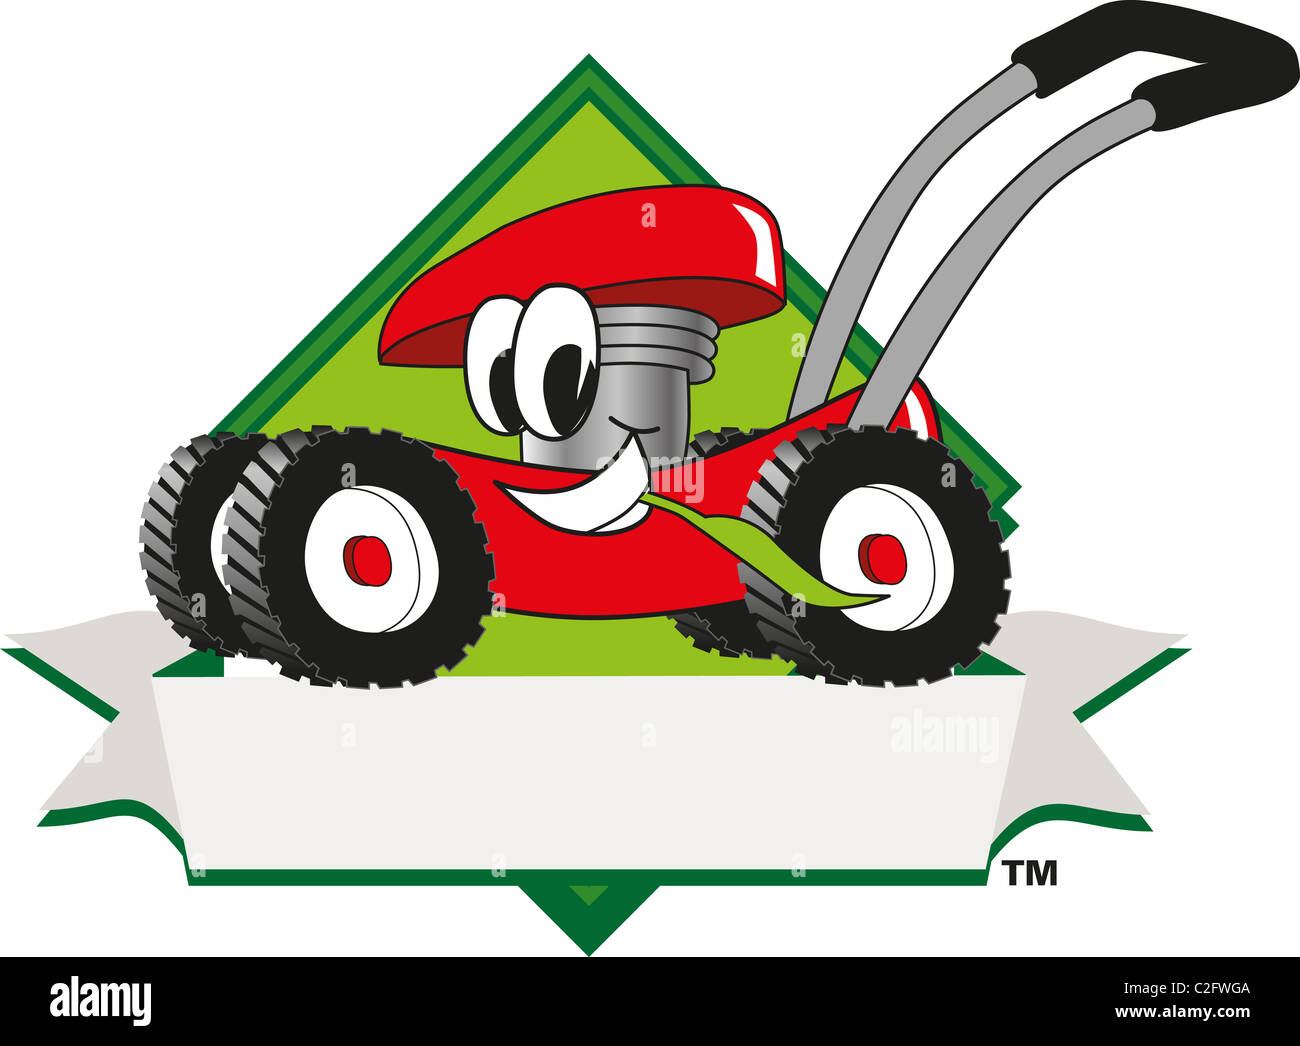 lawn mower logo. cartoon lawn mower clip art and logo template n